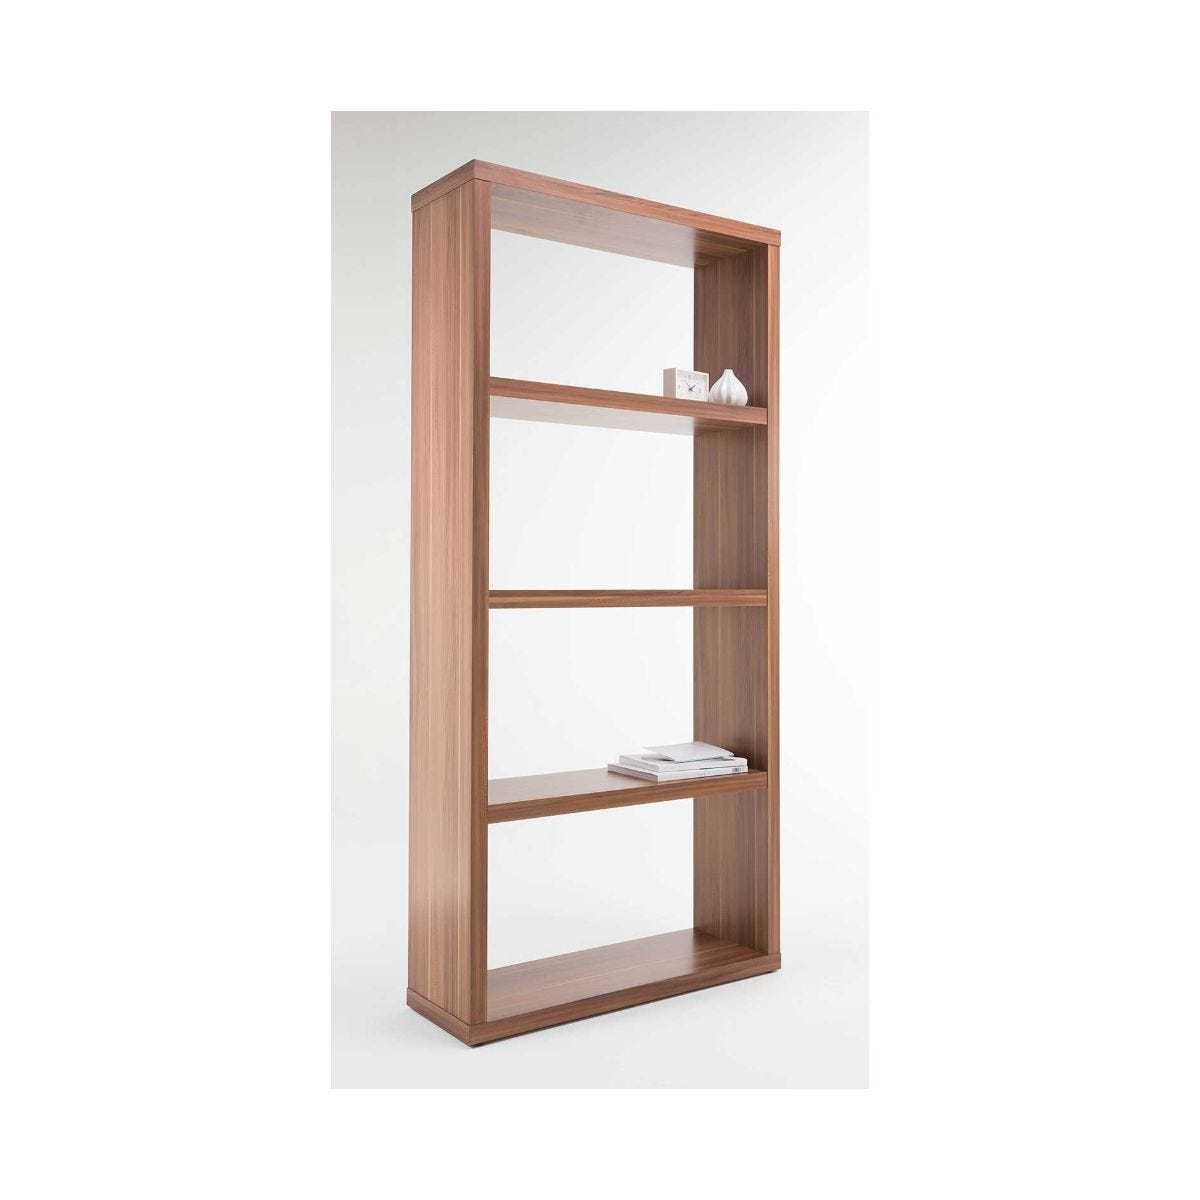 Alphason Maine Effect Wide Bookcase with 4 Shelves, Walnut